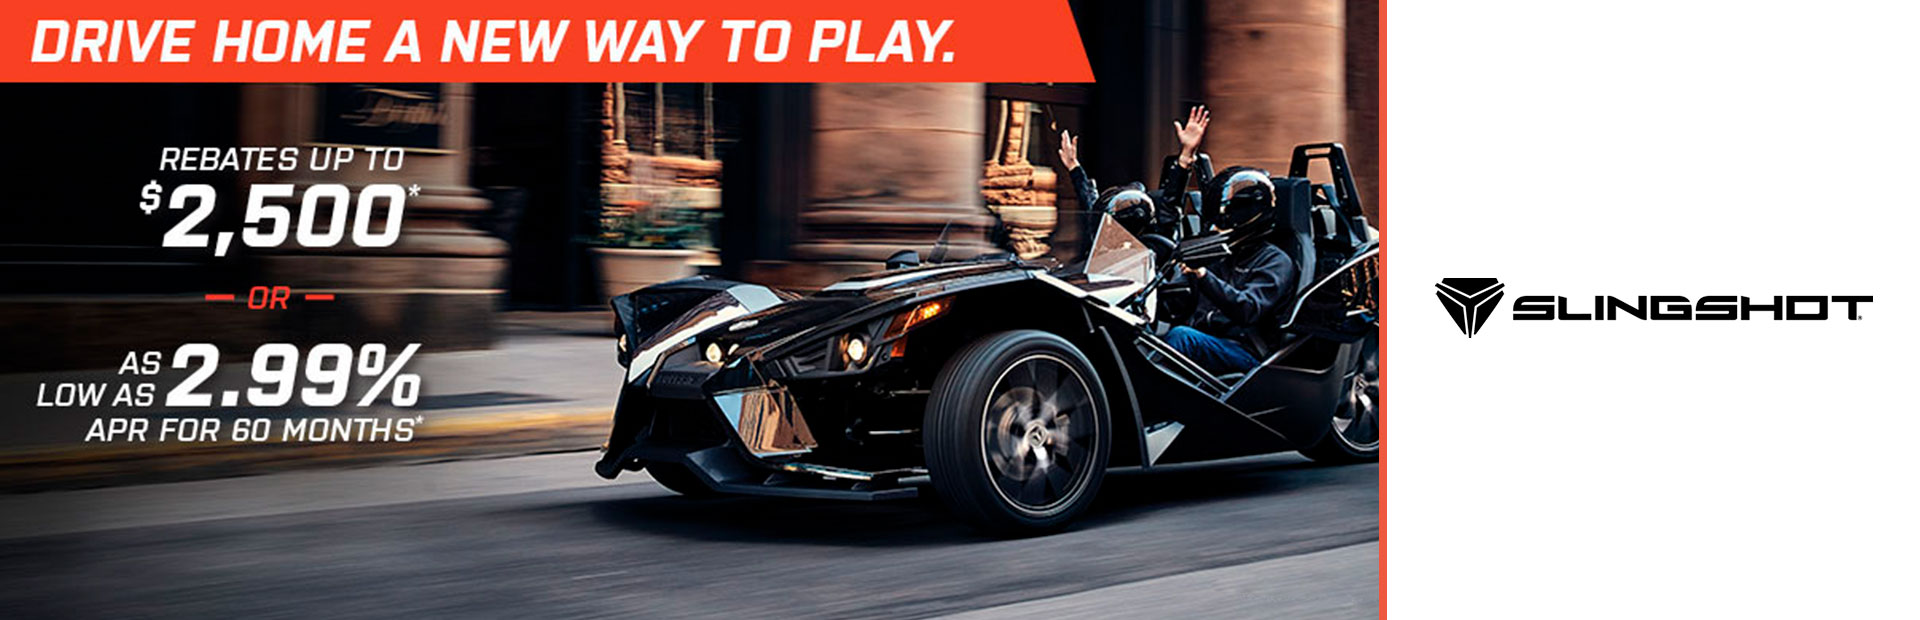 Slingshot - Drive Home A New Way To Play